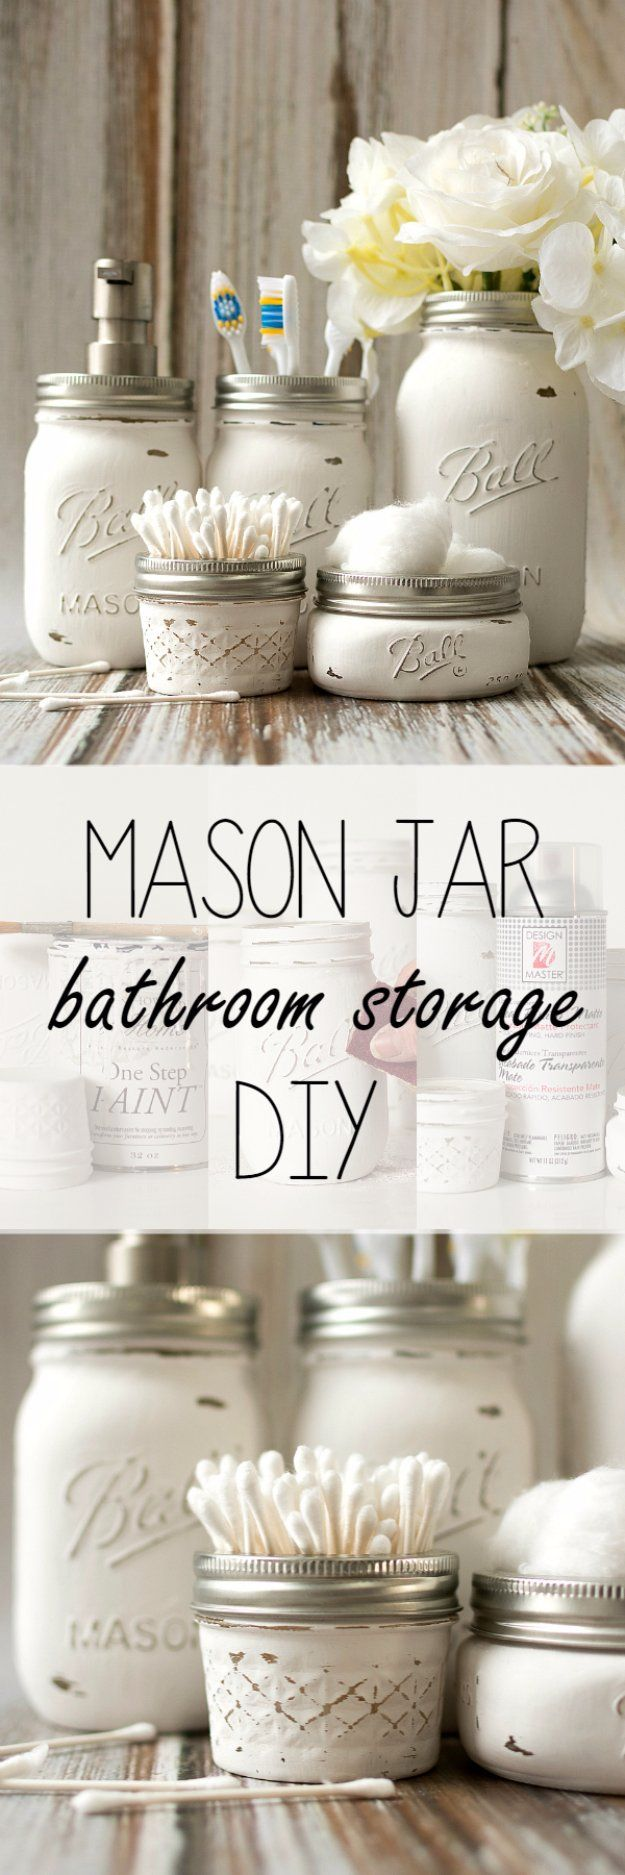 best 25+ elegant bathroom decor ideas on pinterest | small spa